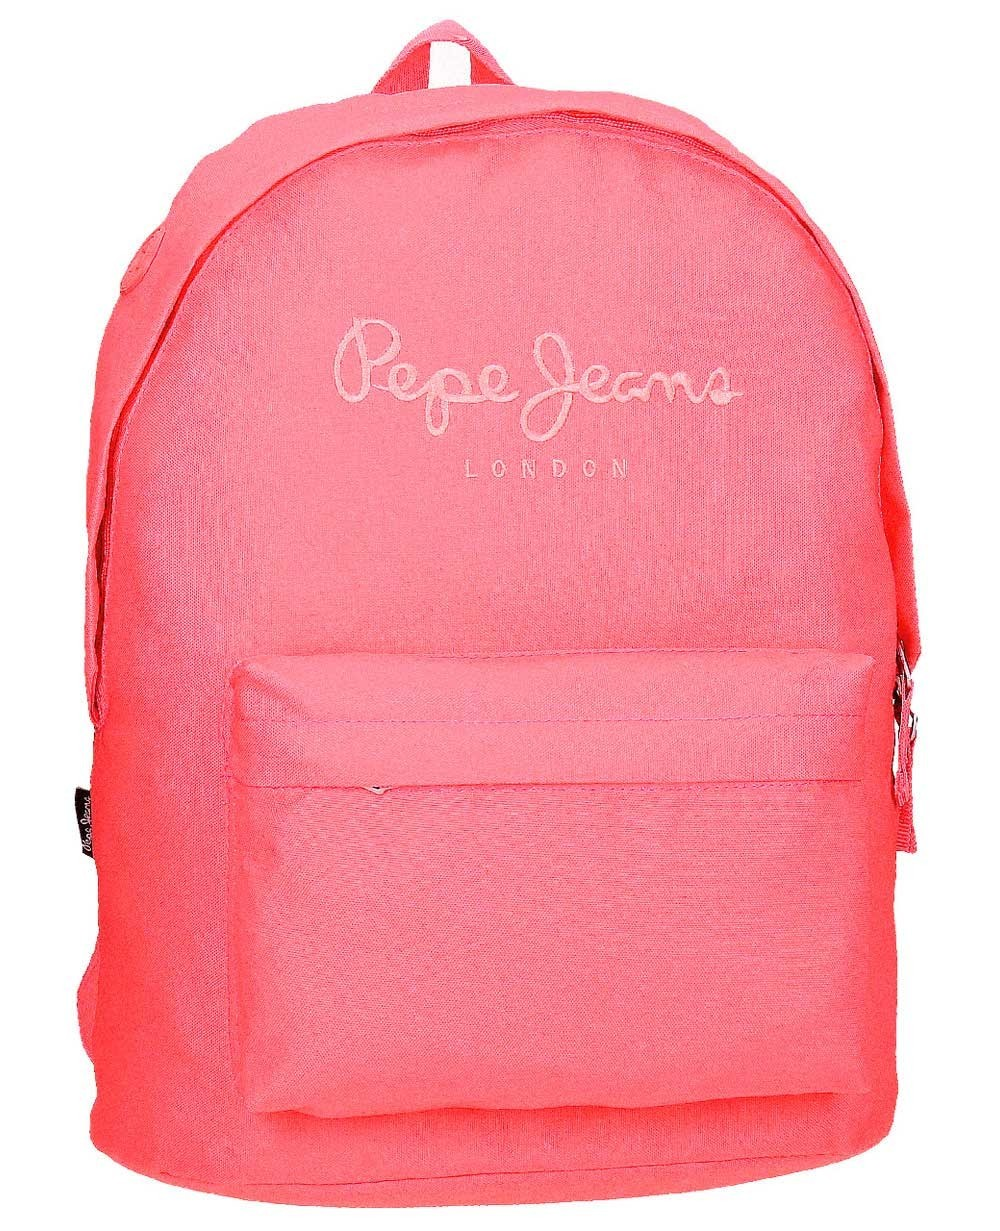 Pepe Jeans Plain Color Mochila adaptable Rosa (Foto )